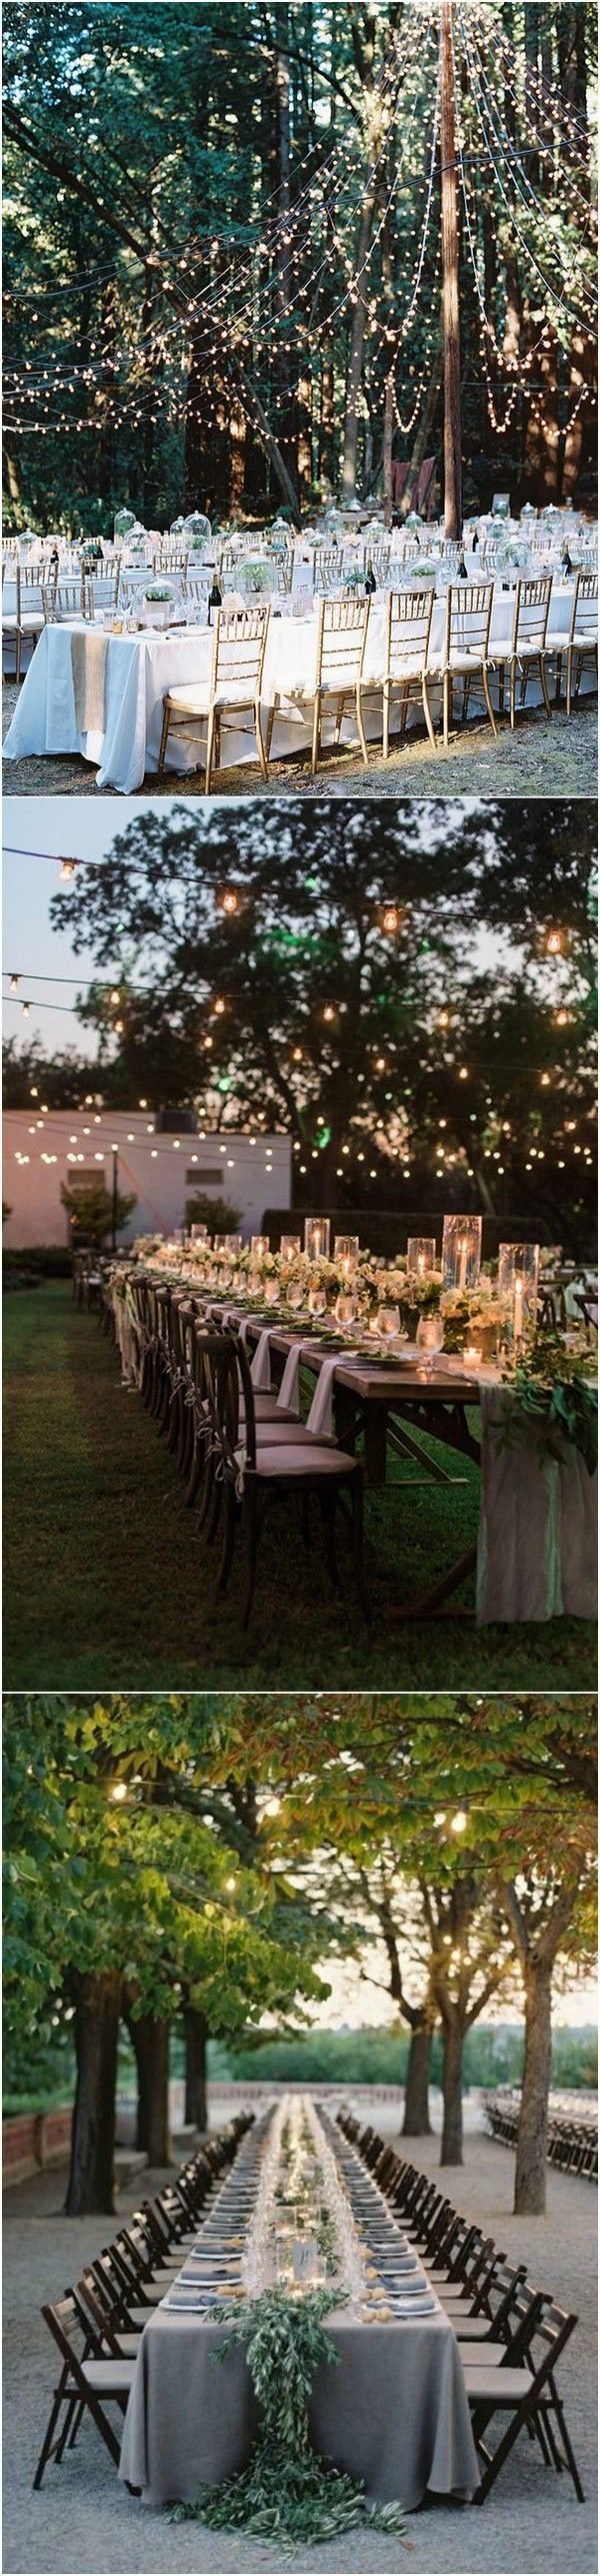 Wedding decoration ideas outside  Top  Whimsical Outdoor Wedding Reception Ideas  Page  of